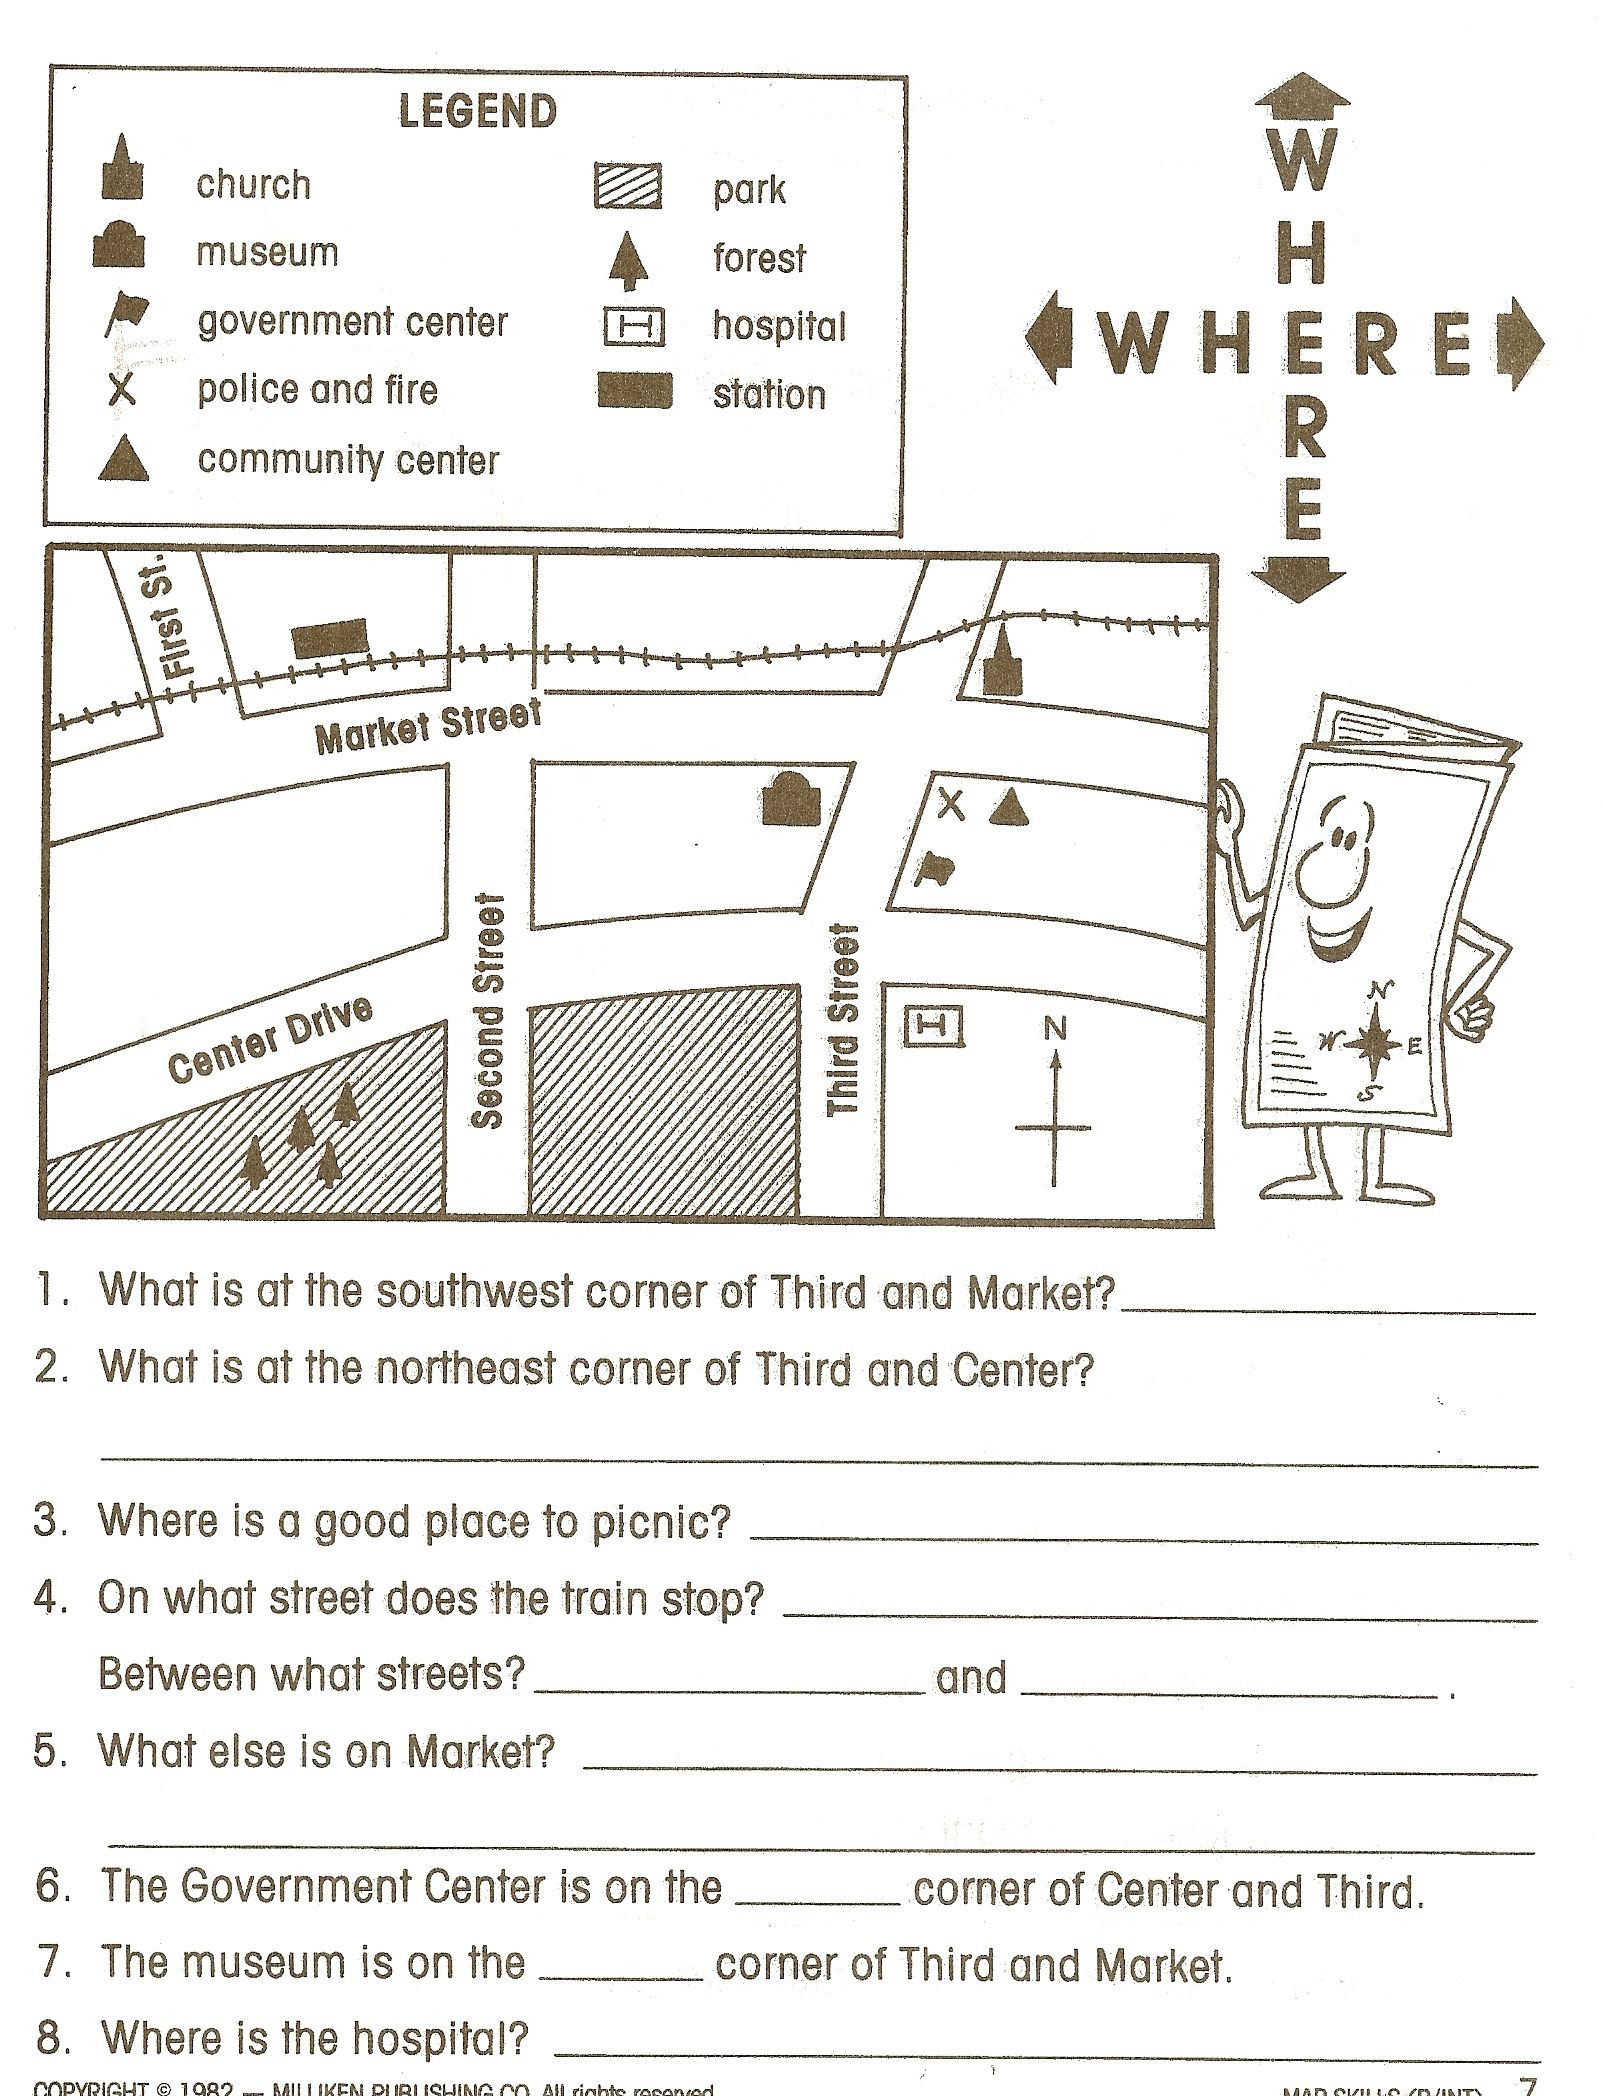 Social Studies Worksheets 6th Grade social Stu S Worksheets Google Search